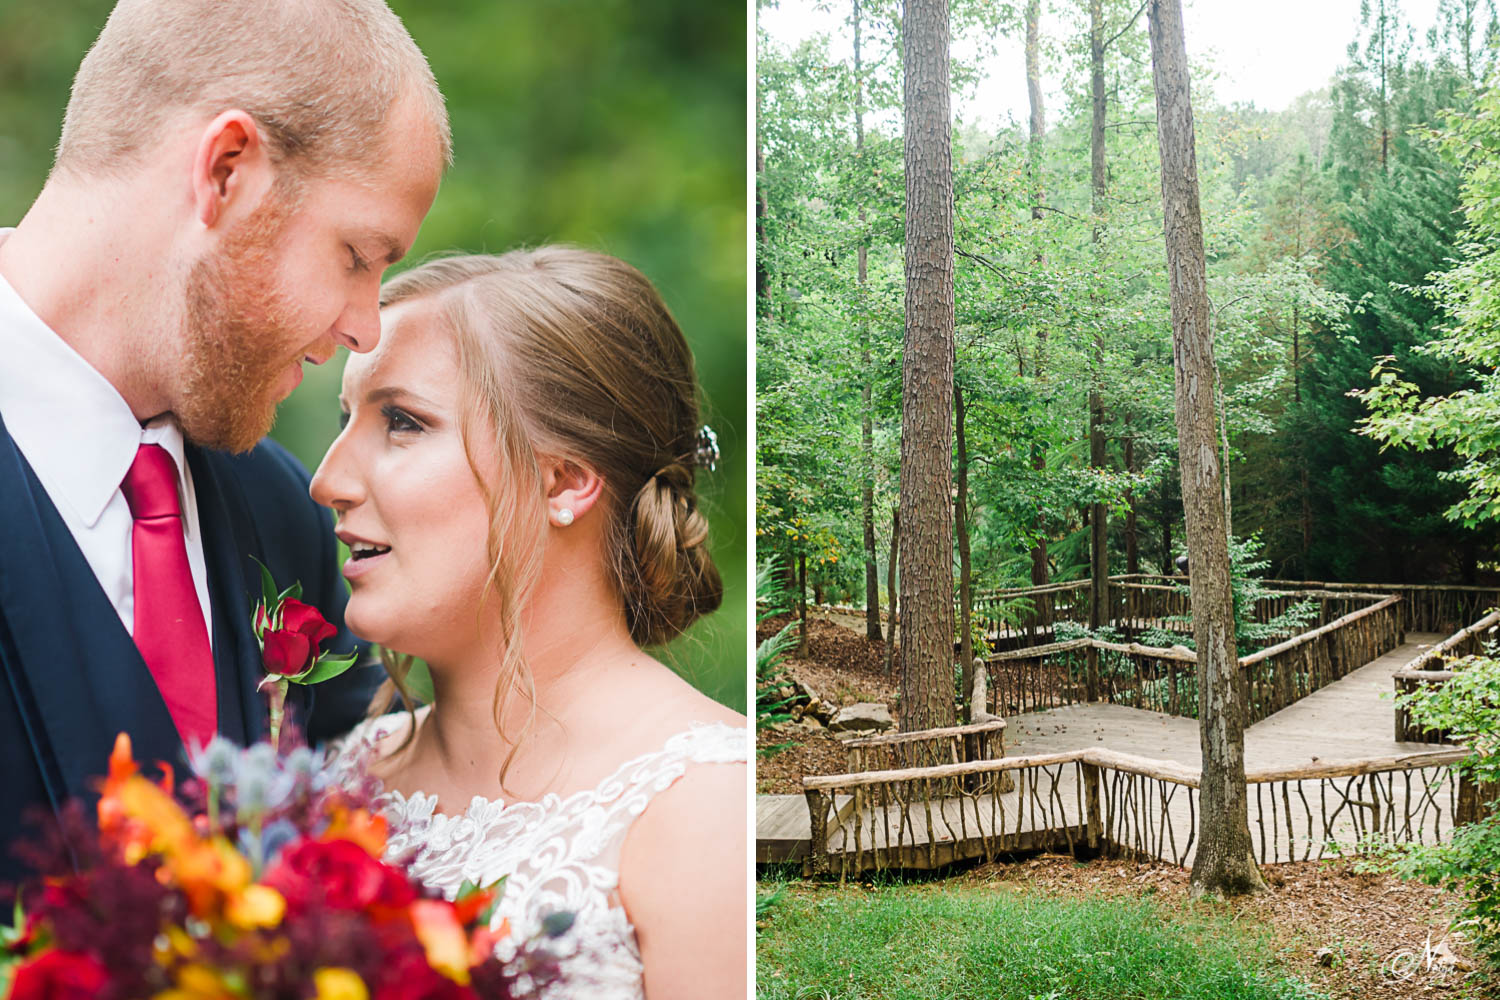 bride and groom portraits outside . And rustic wood walking pbridges at Indigo Falls events in Dallas GA